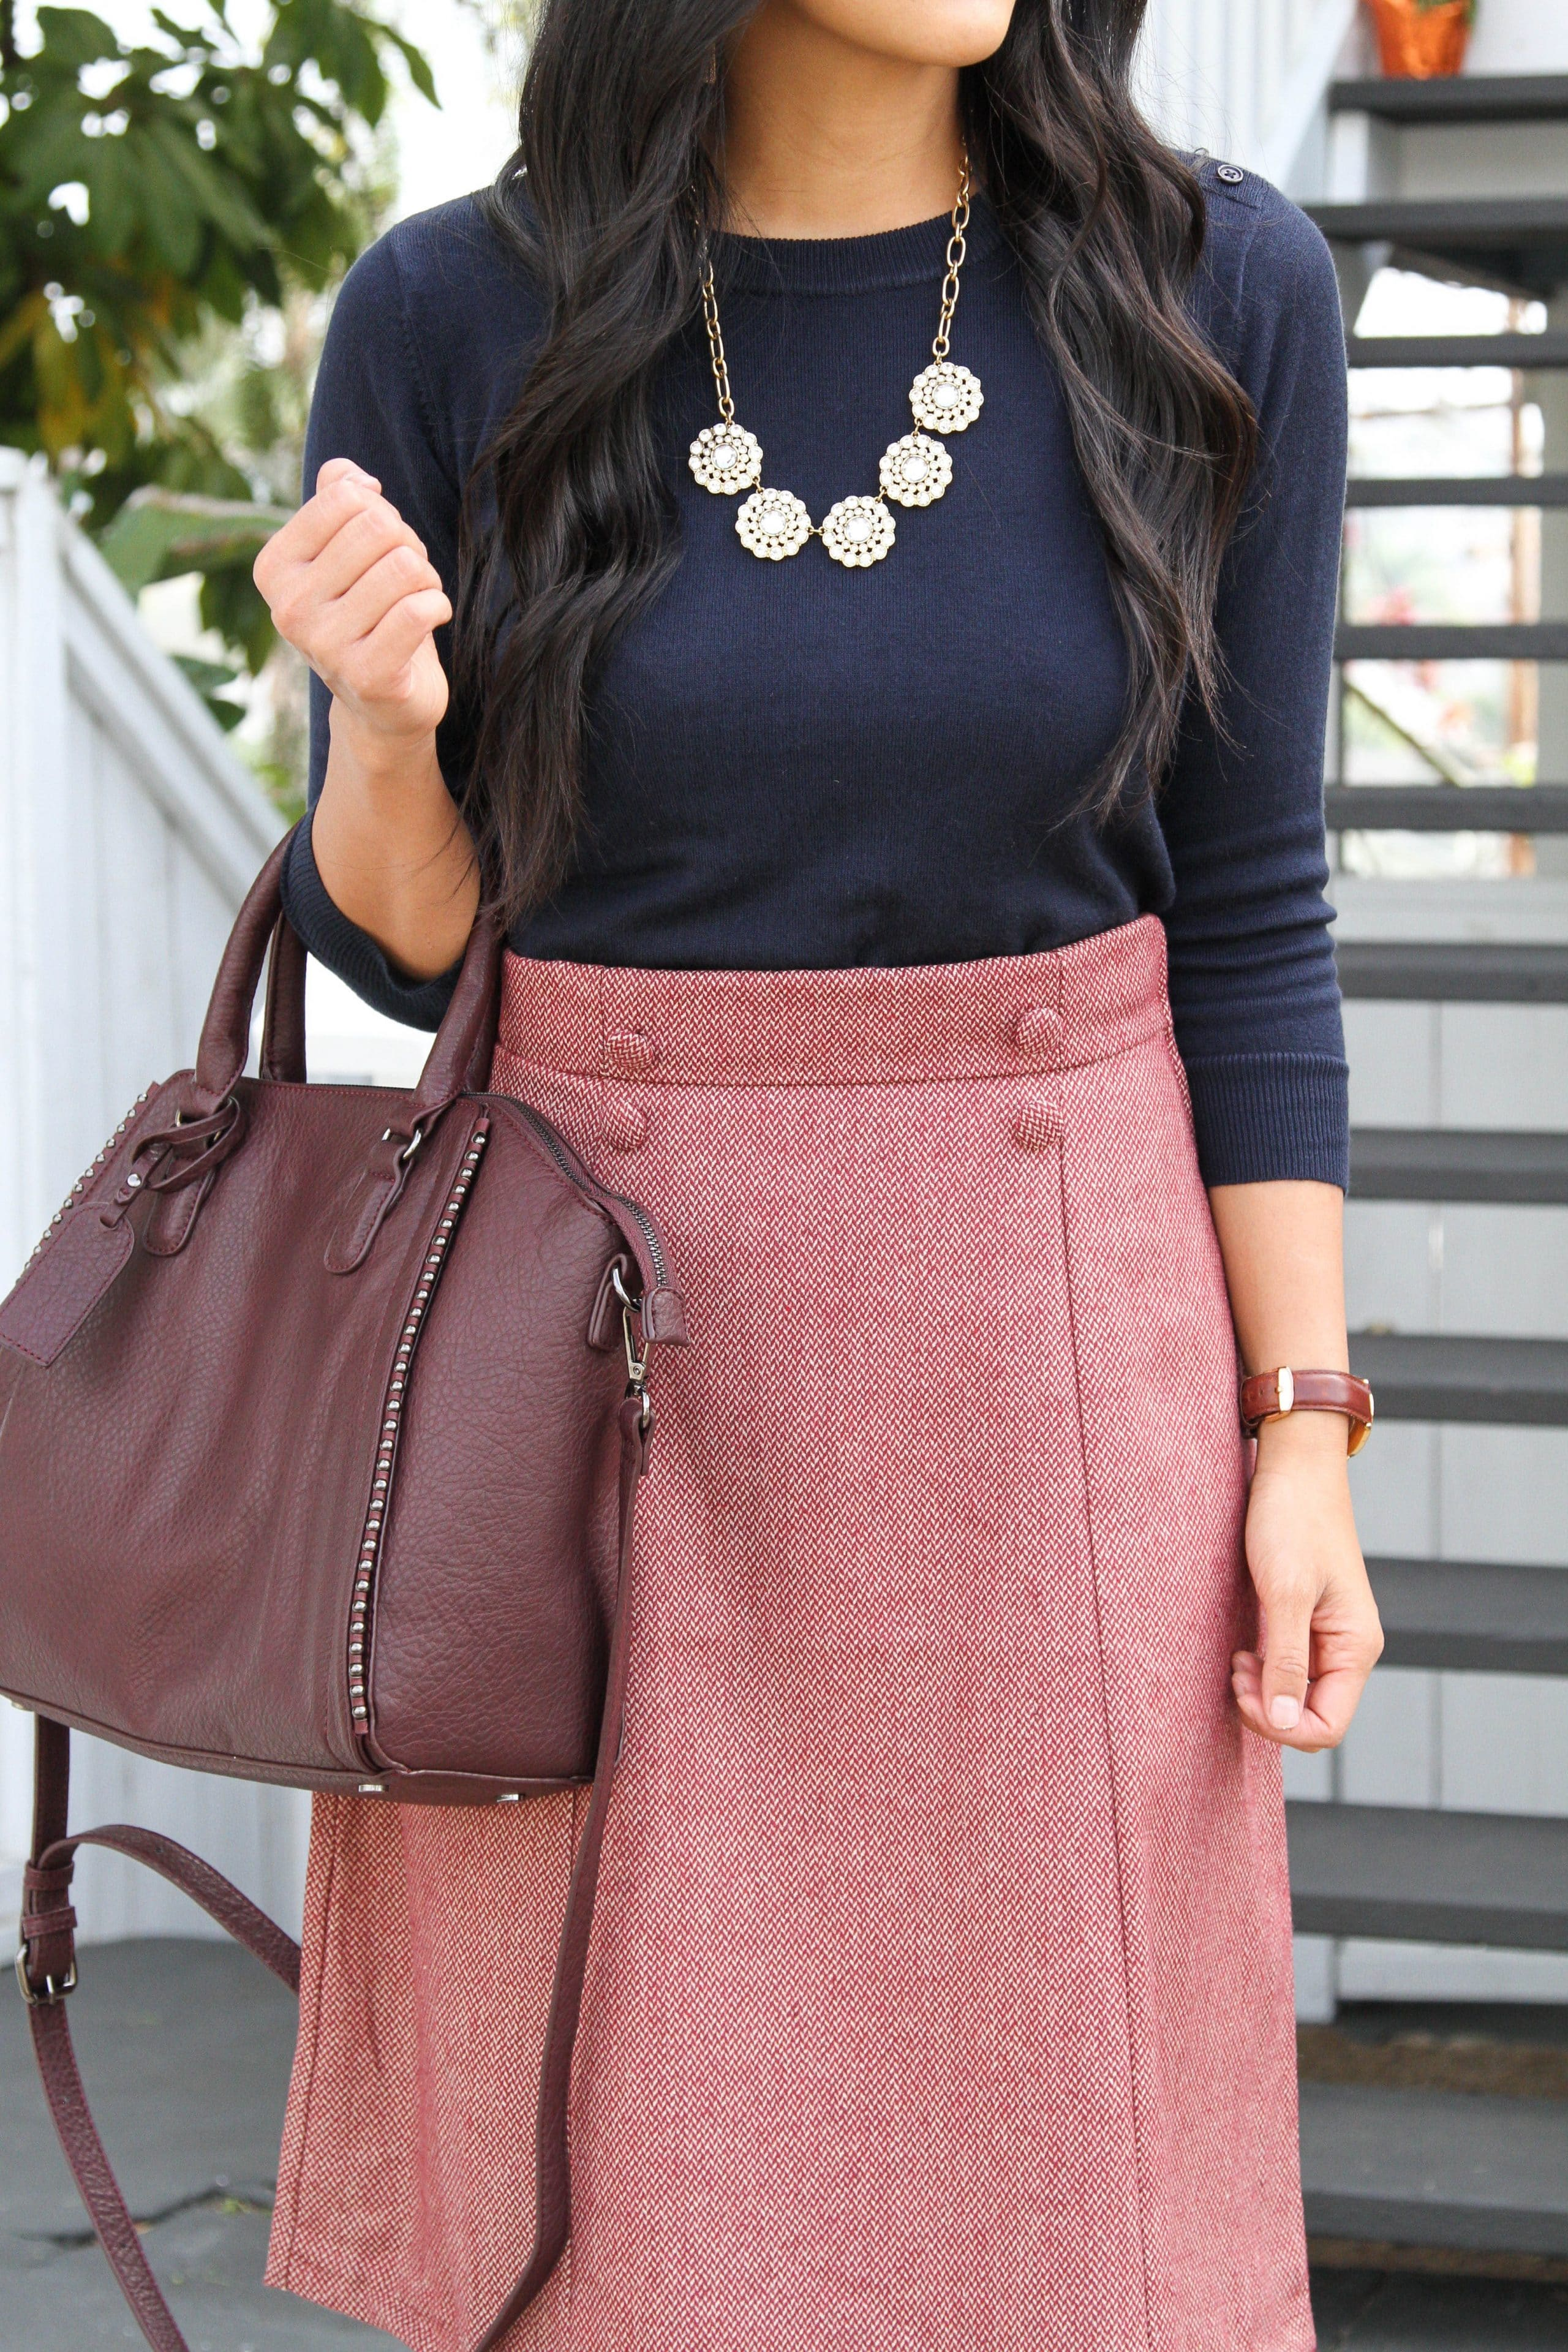 High Waisted Skirt + Navy Sweater + Wine Colored Bag + Statement Necklace